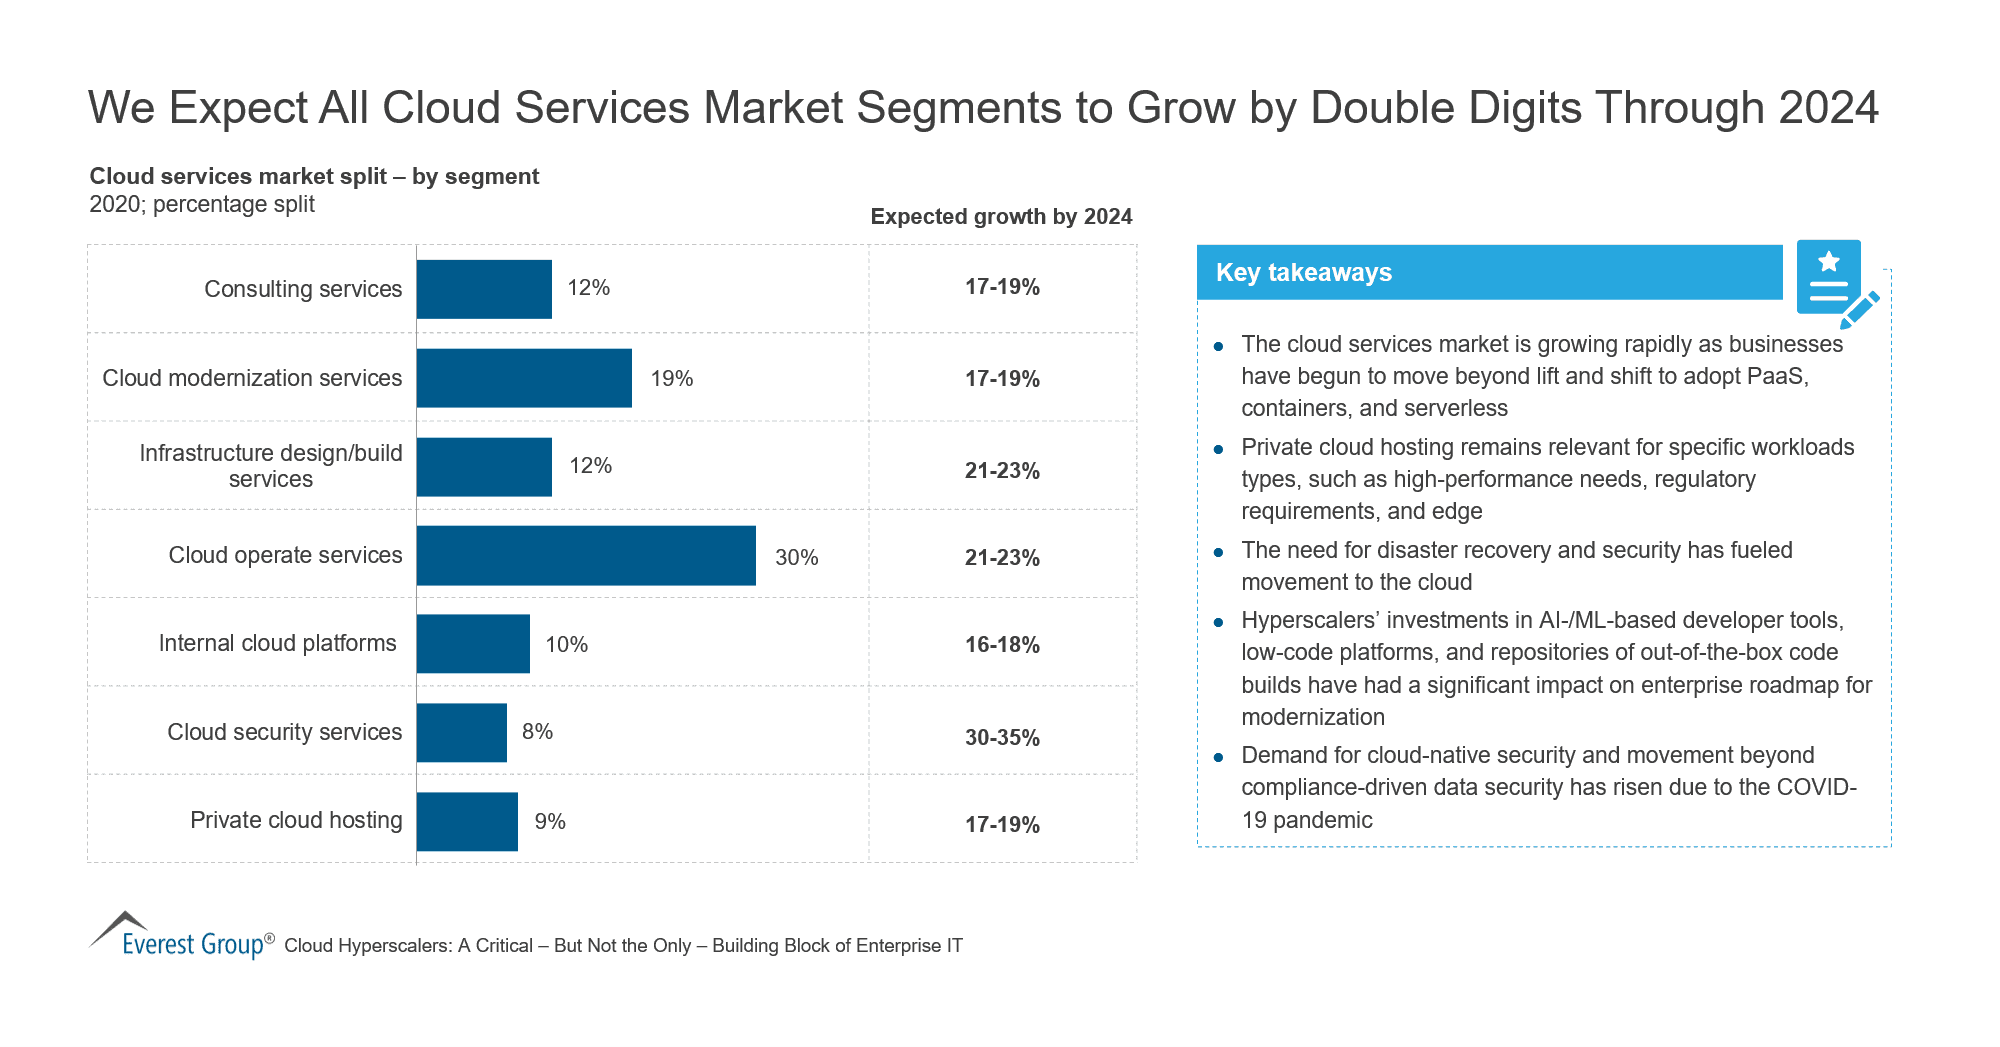 Cloud Services Market to Grow by Double Digits